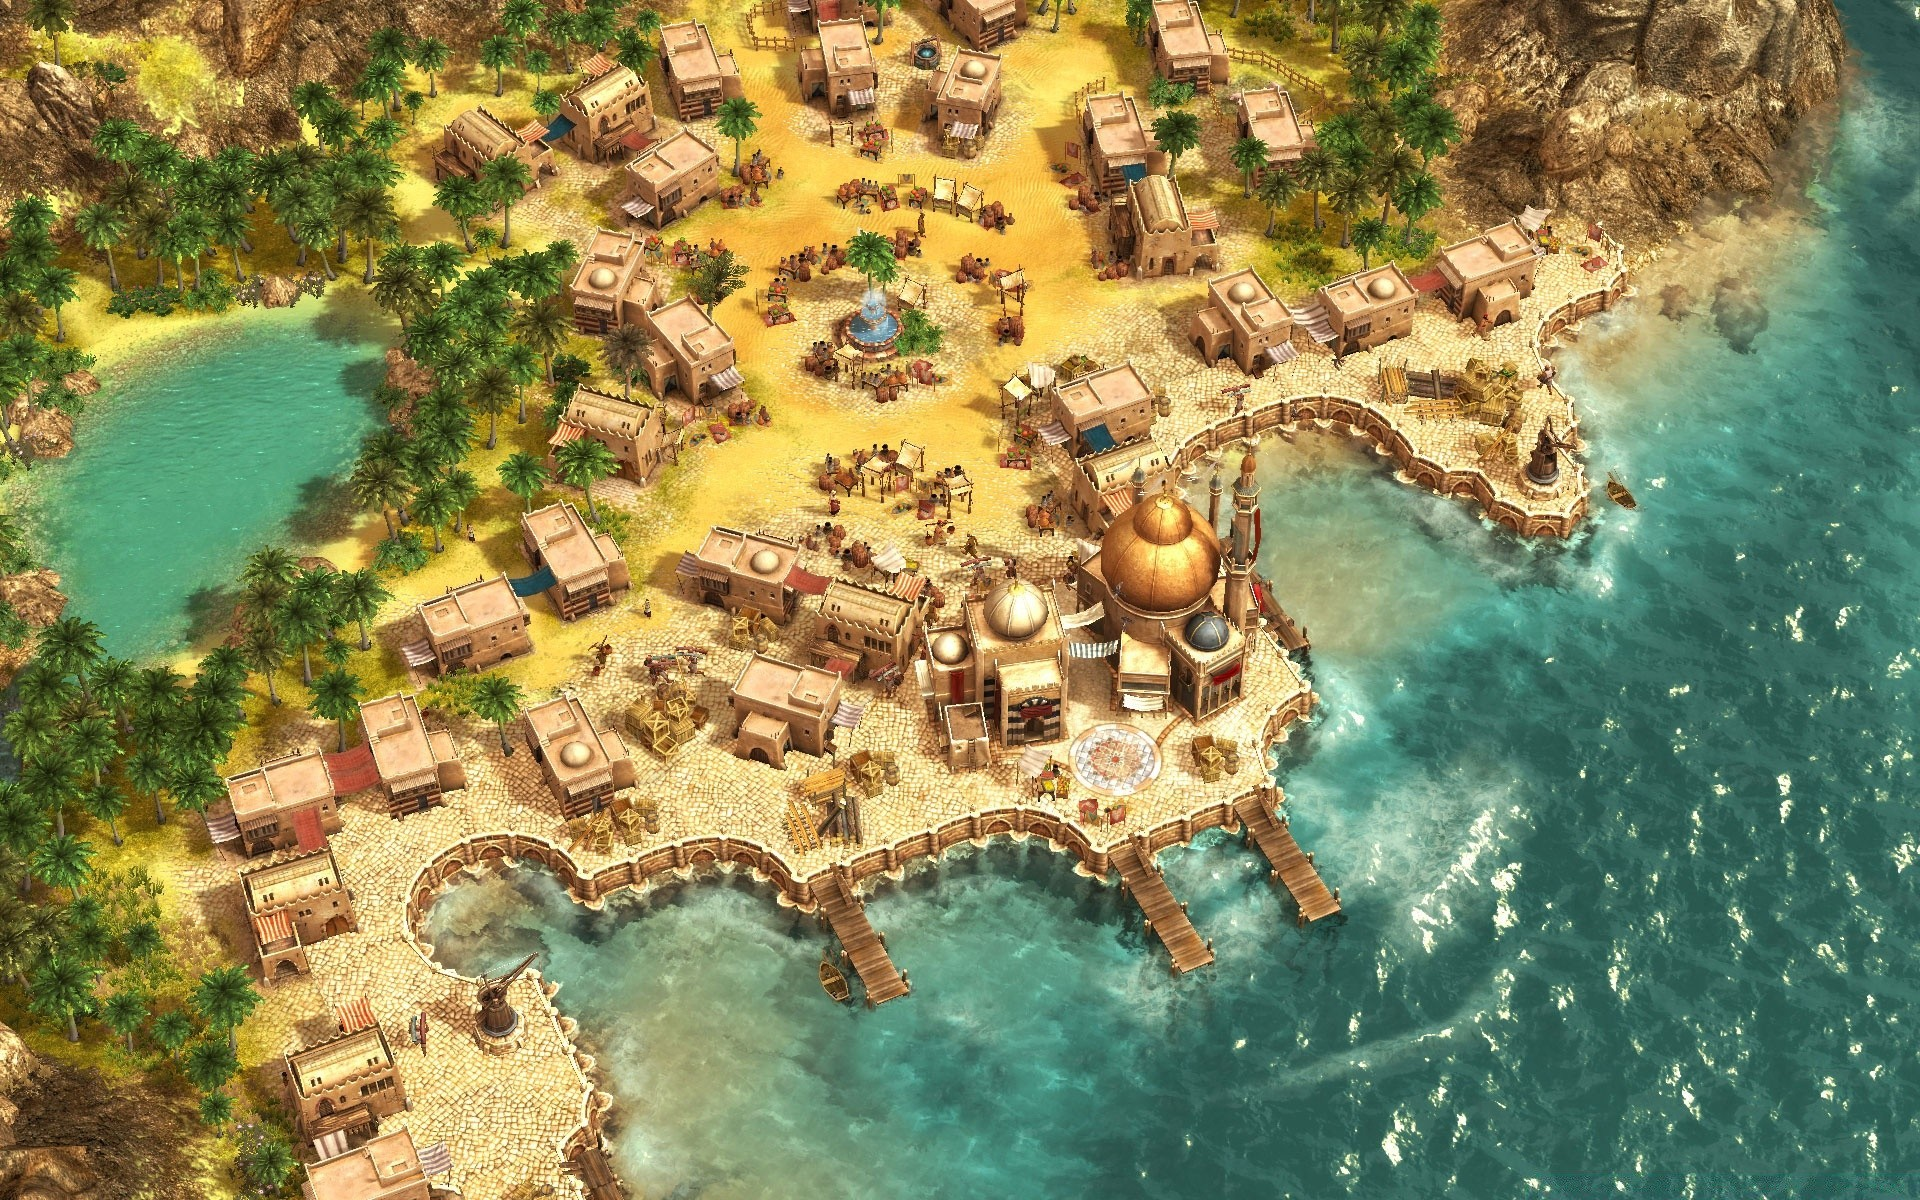 anno Anno 1800™ - lead the industrial revolution combining beloved features with innovative gameplay in a memorable new setting, anno 1800 marks the beginning of a new era for the anno franchise.